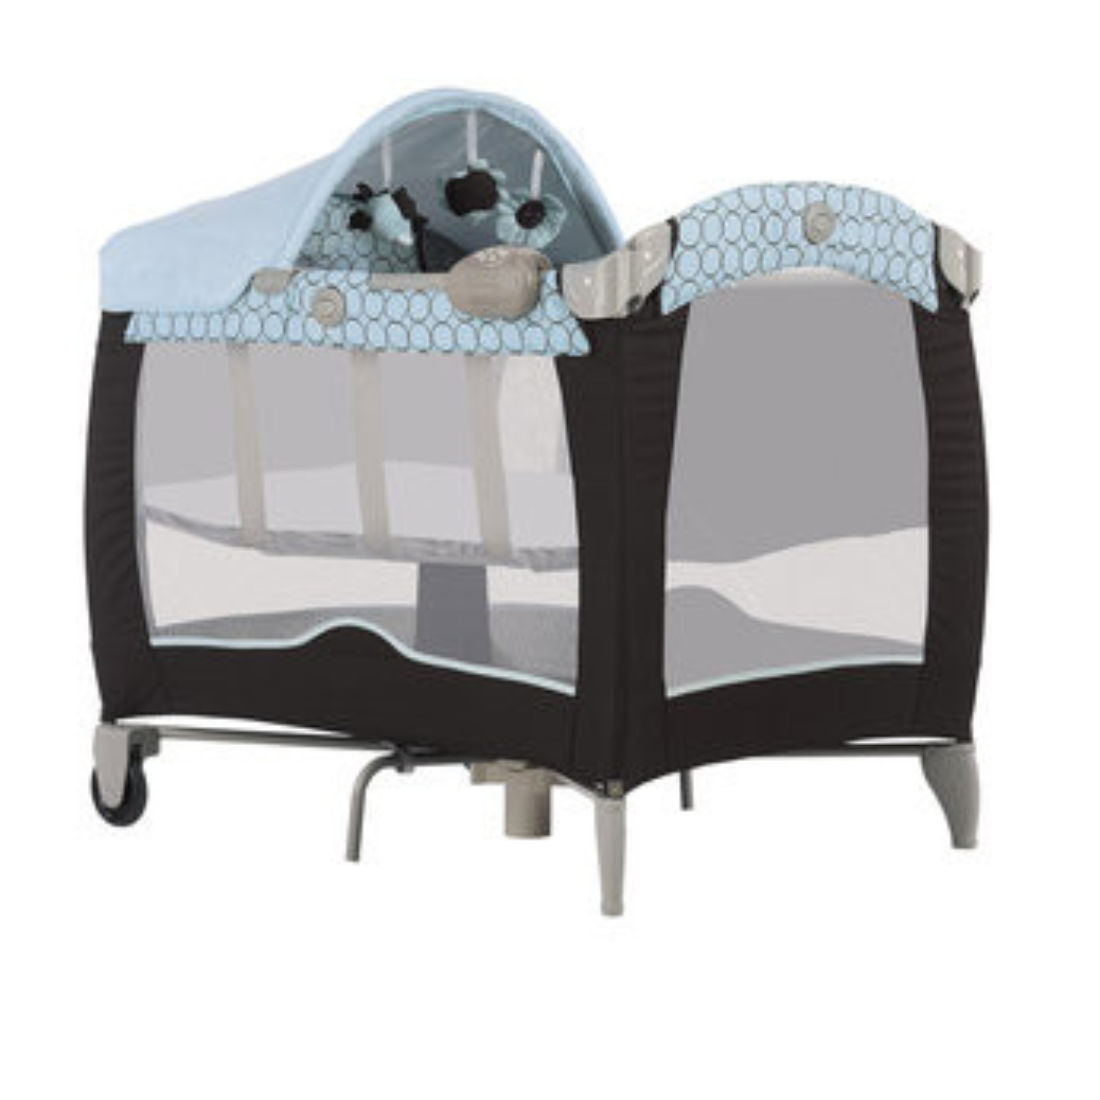 Appealing lotus travel crib as wells as babies in kids in portable baby playard travel cribs. Endearing in travel cot mattress clevamama clevafoam as wells as travel cot mattress. Enamour joie commuter change travel cot joie commuter change travel cot from buggybaby.